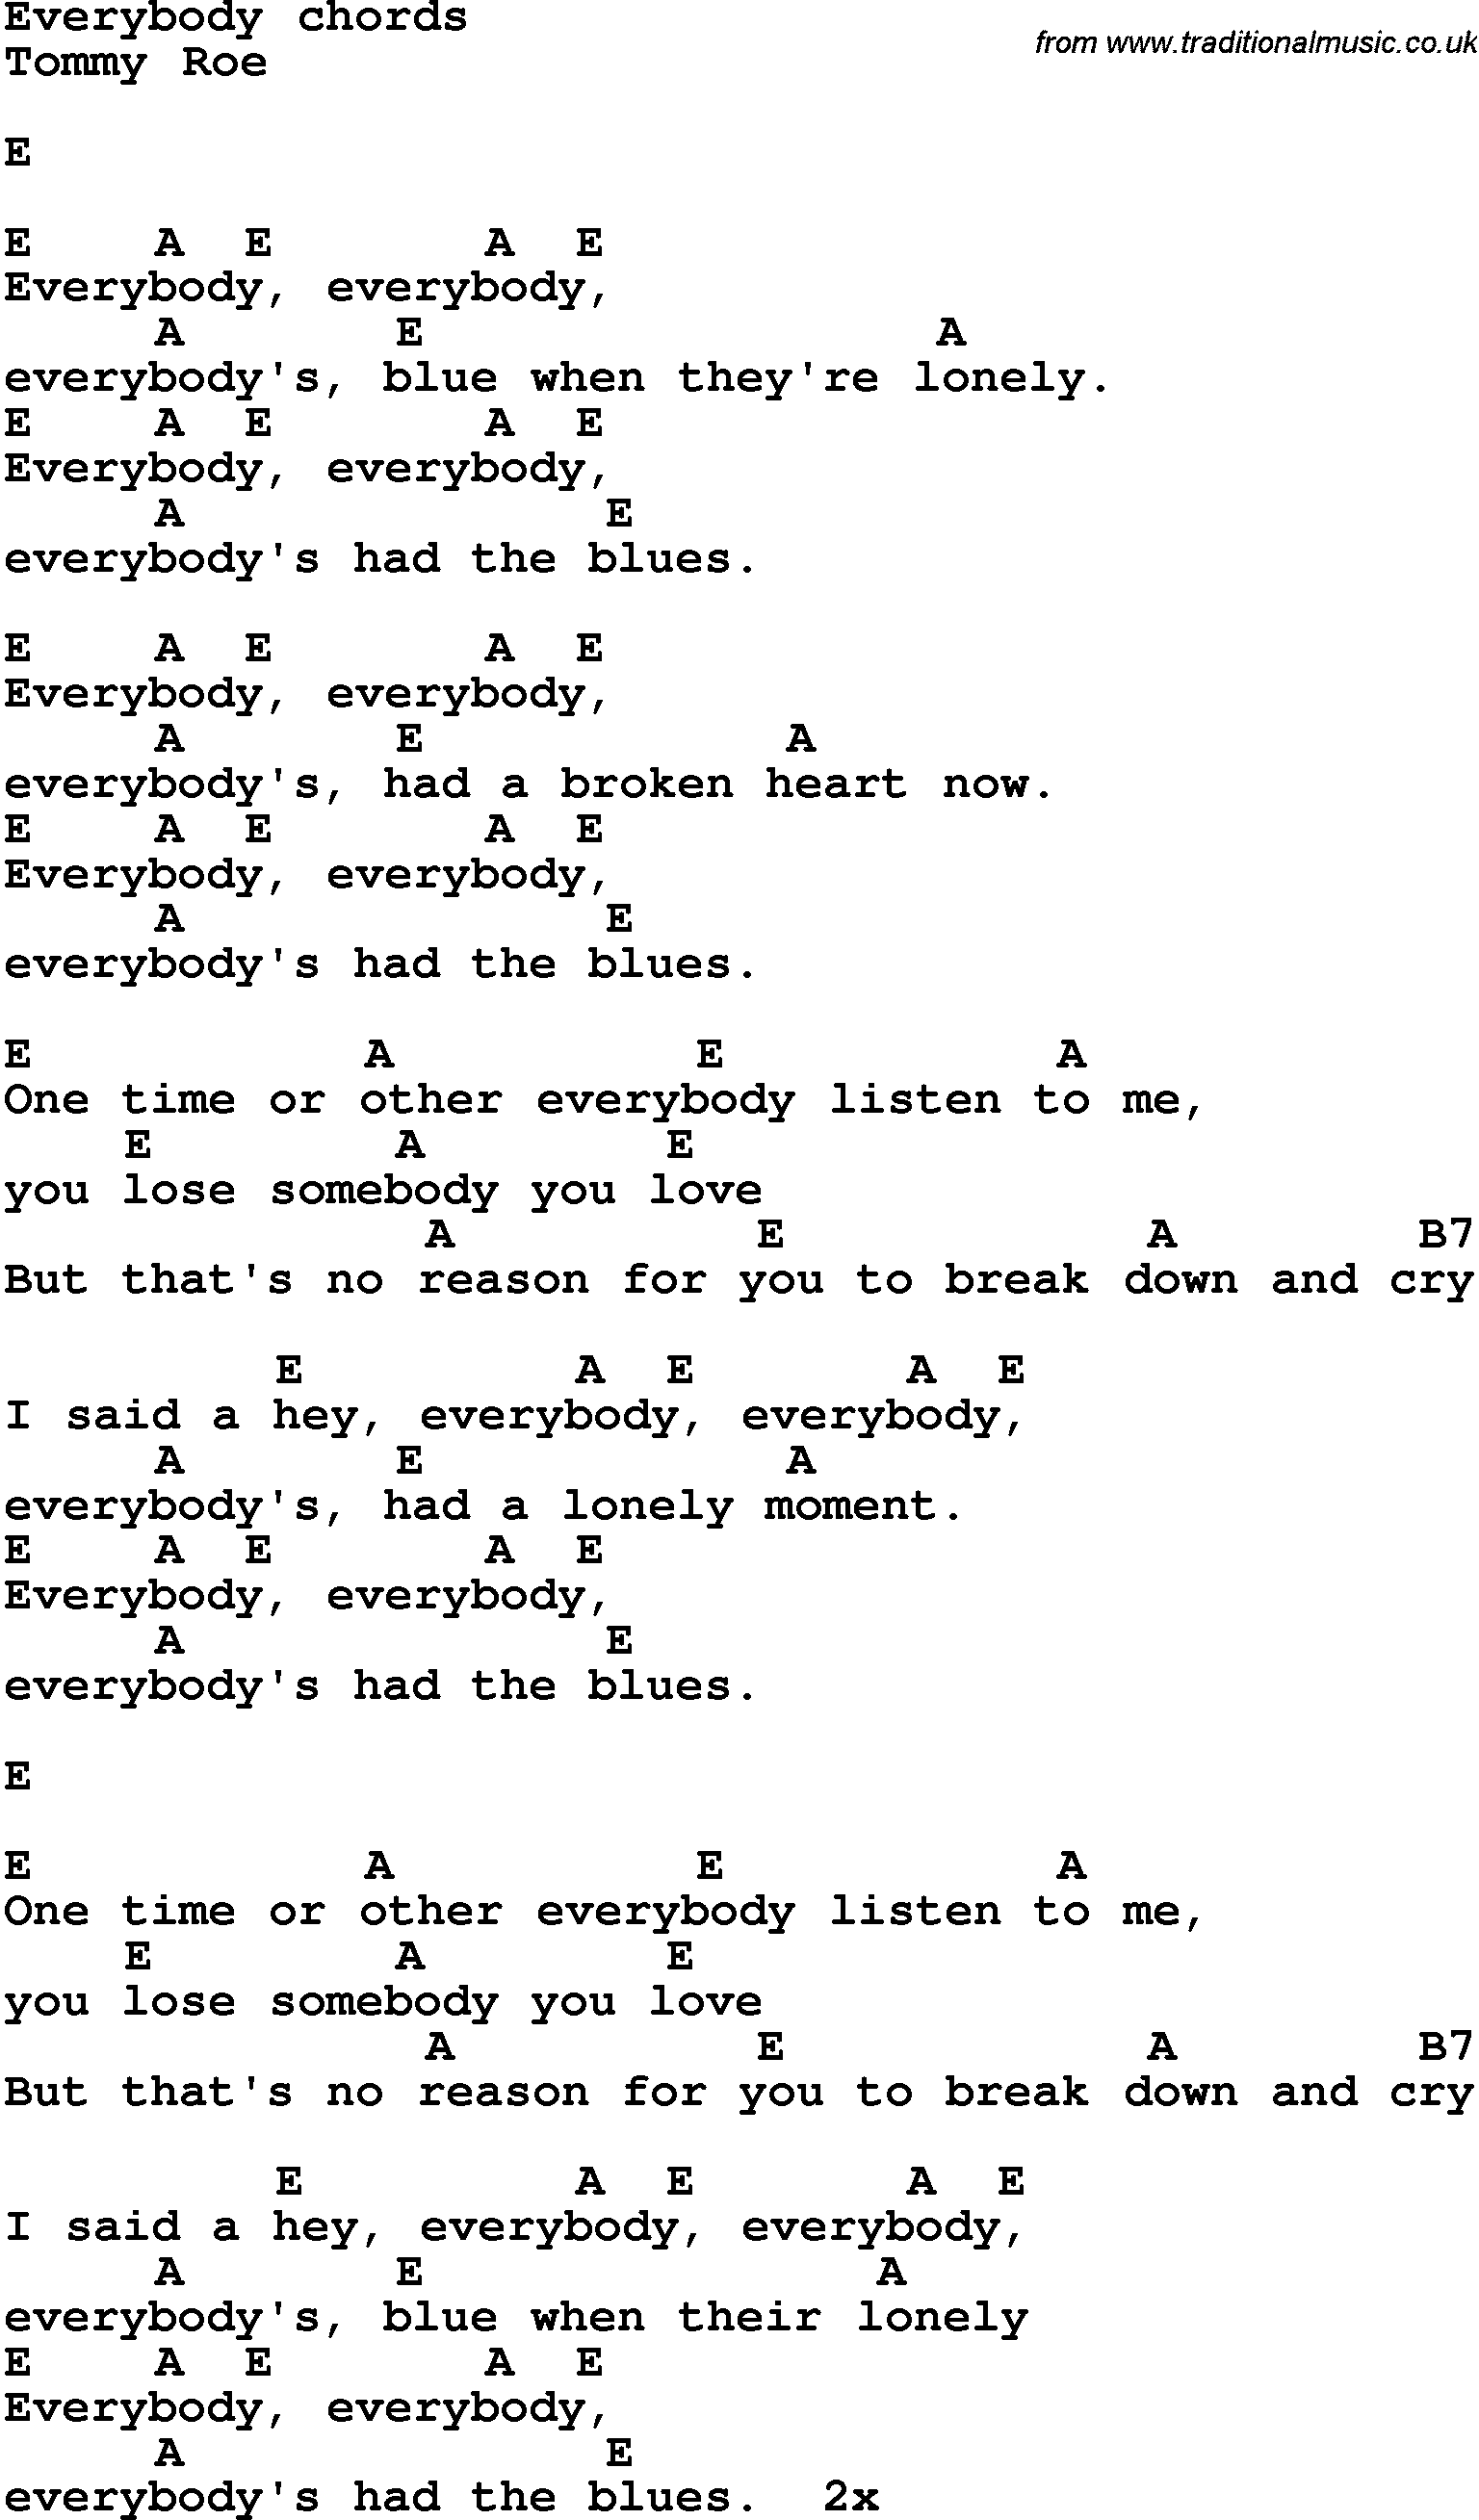 Song lyrics with guitar chords for Everybody